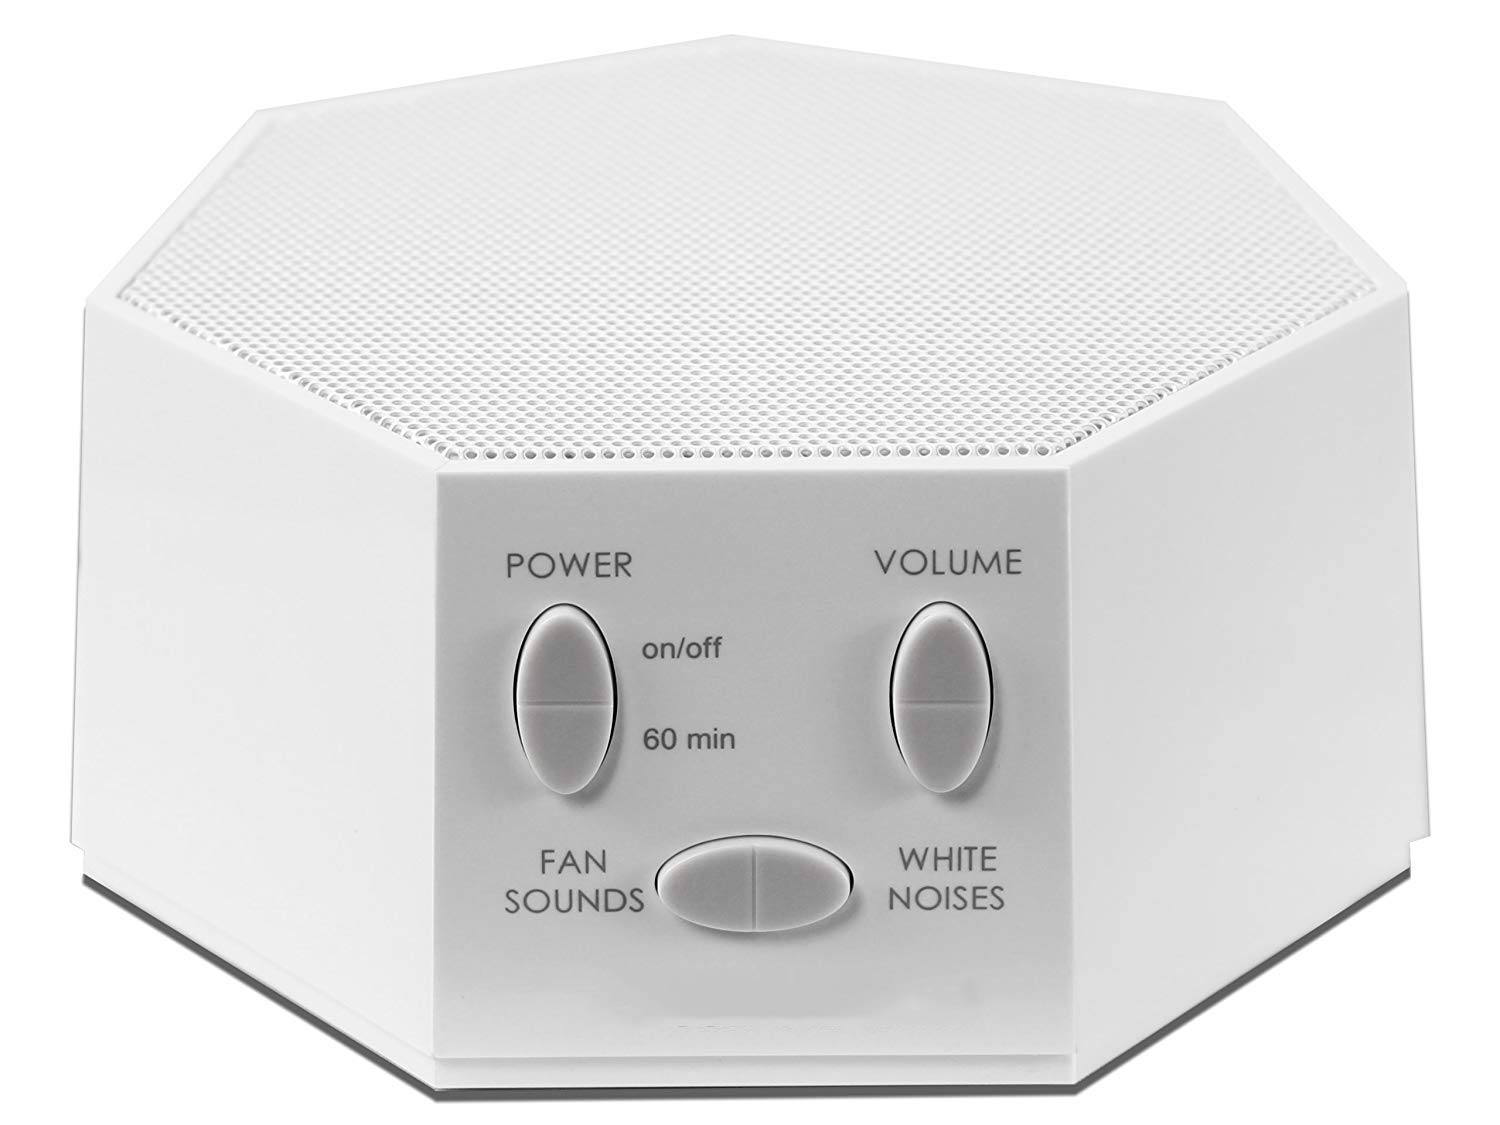 White Noise Sound Machine Portable Sleep Therapy for Home, White Noise Machine for Office Privacy Fan Sound with Nightlight, for Home Office Baby Travel Rechargeable Battery